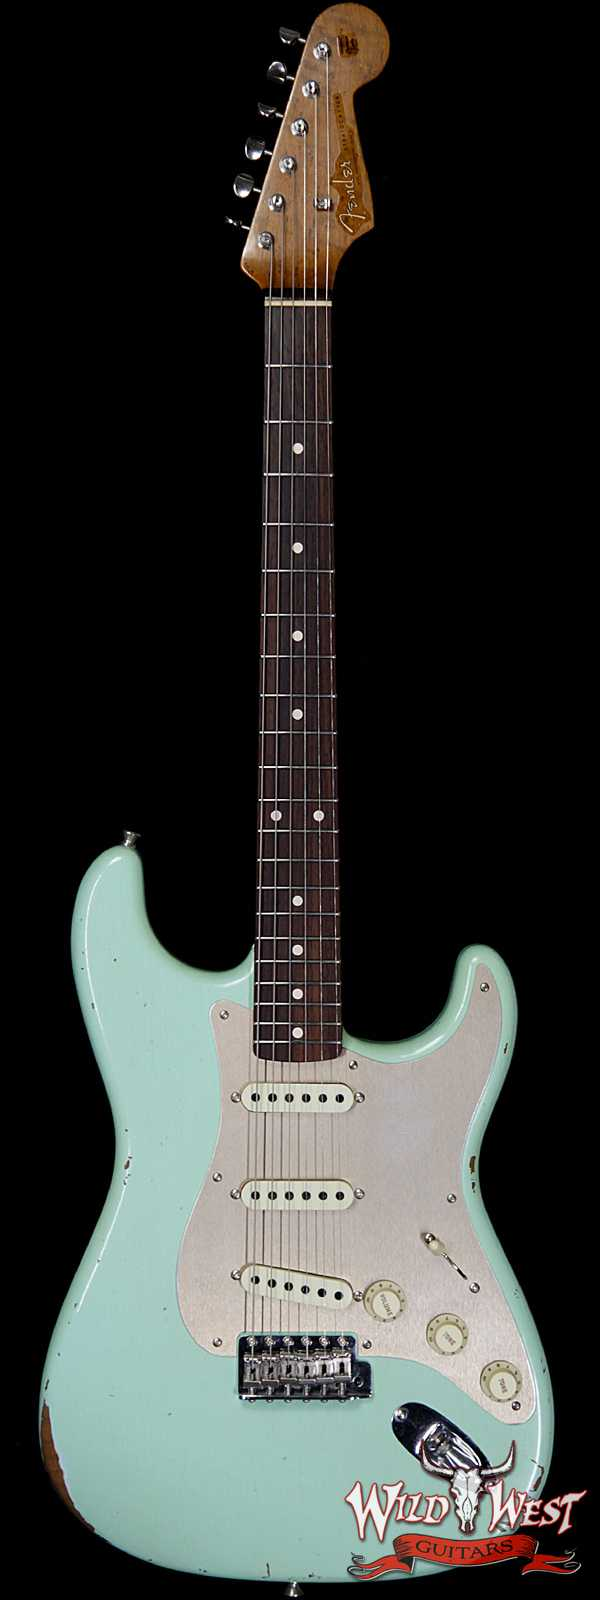 Fender Custom Shop Roasted 1960 Stratocaster Relic 3A Birdseye Maple Neck 3A Rosewood Board Aged Surf Green